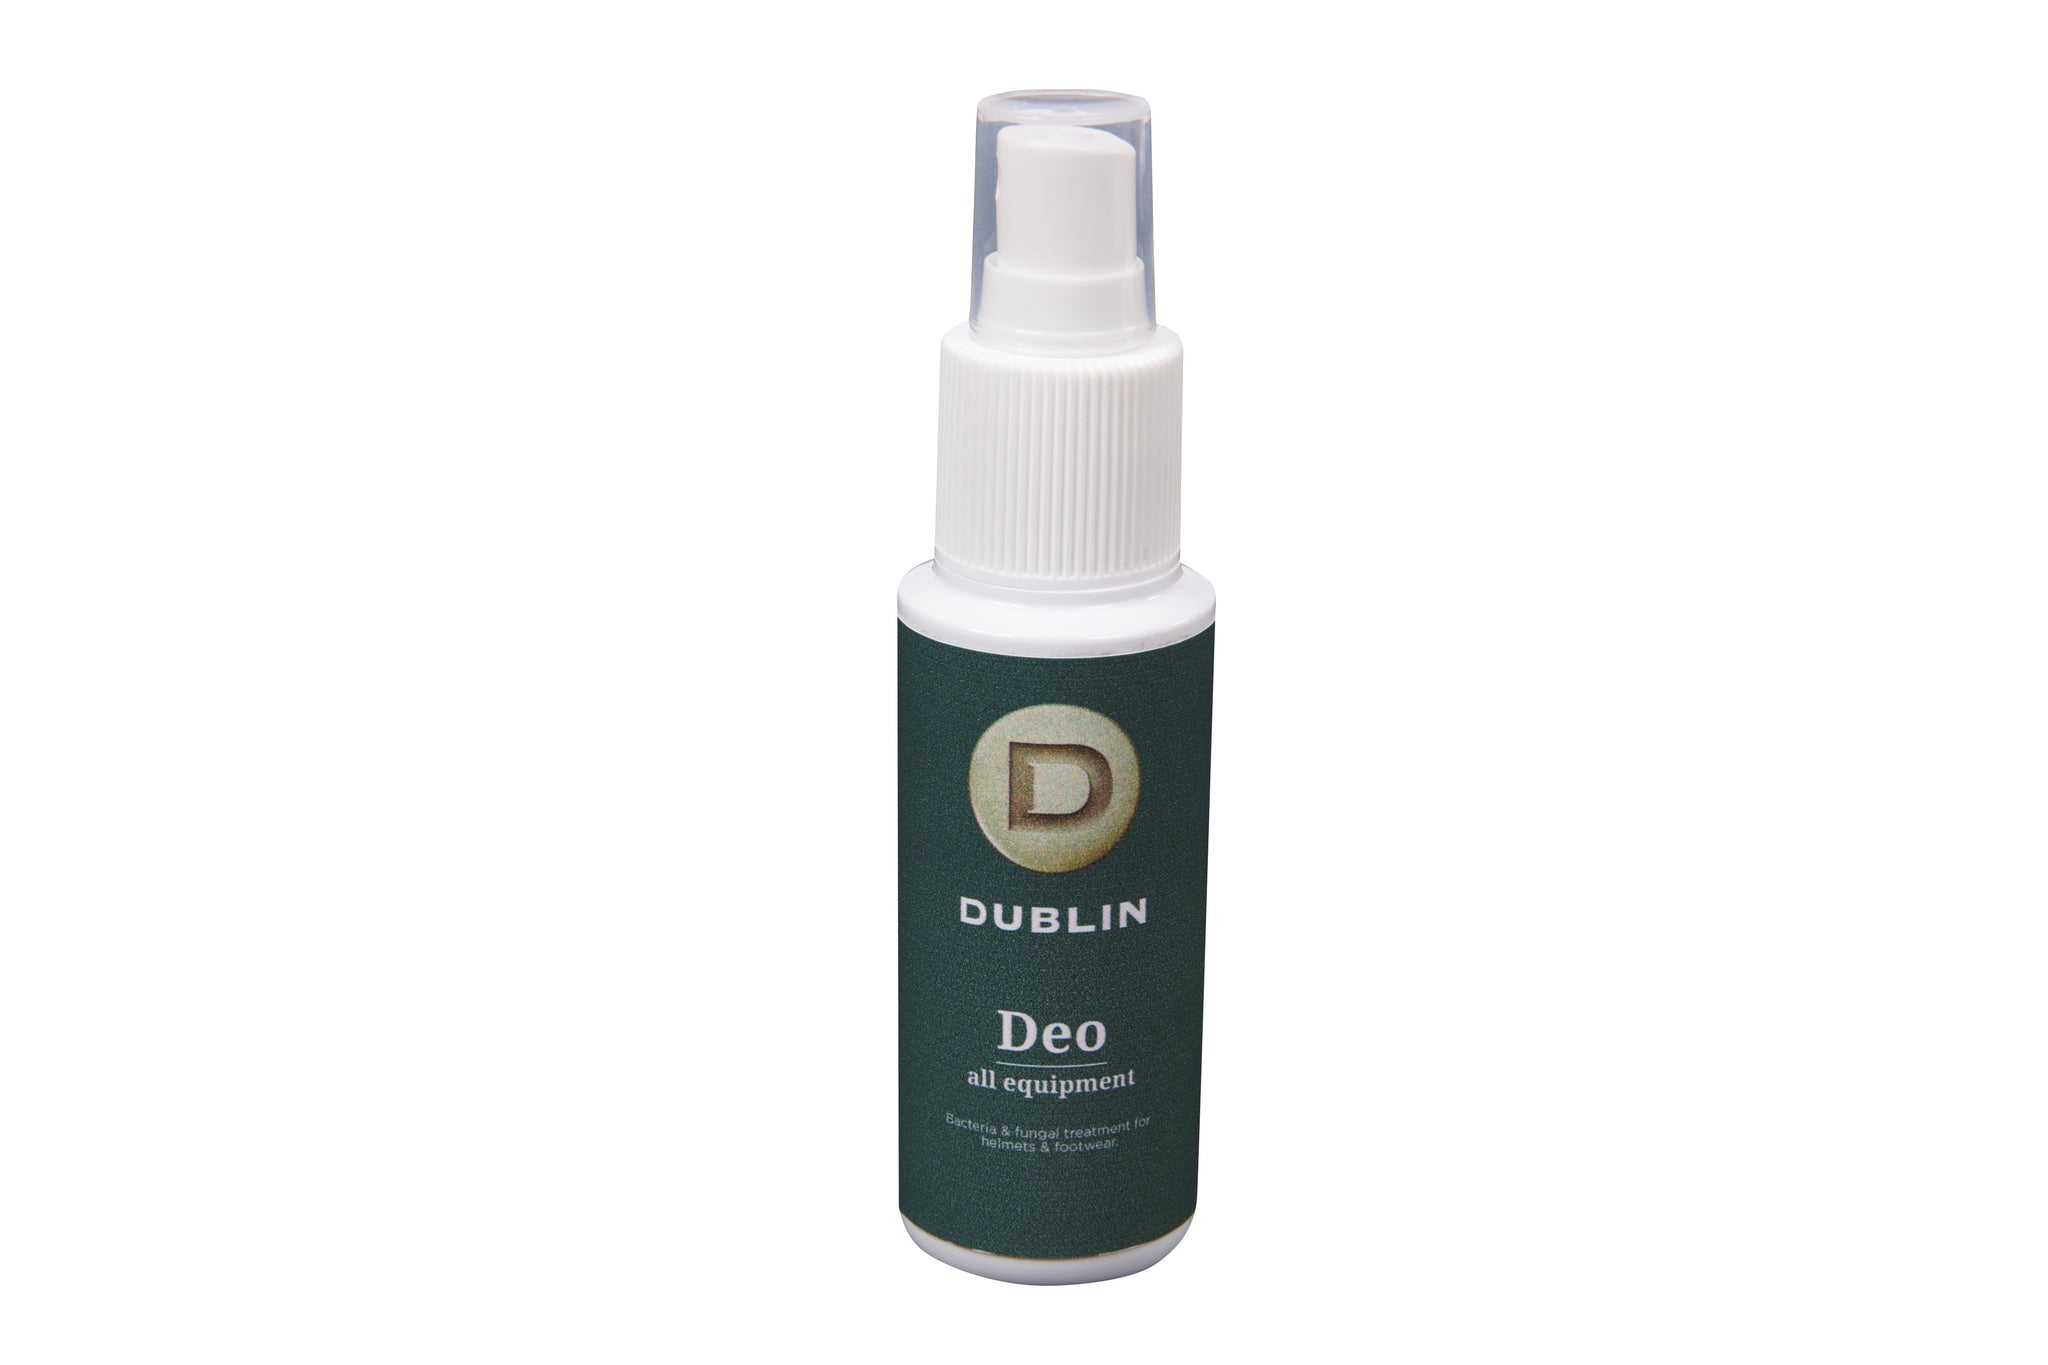 Dublin Deo Spray 75ml